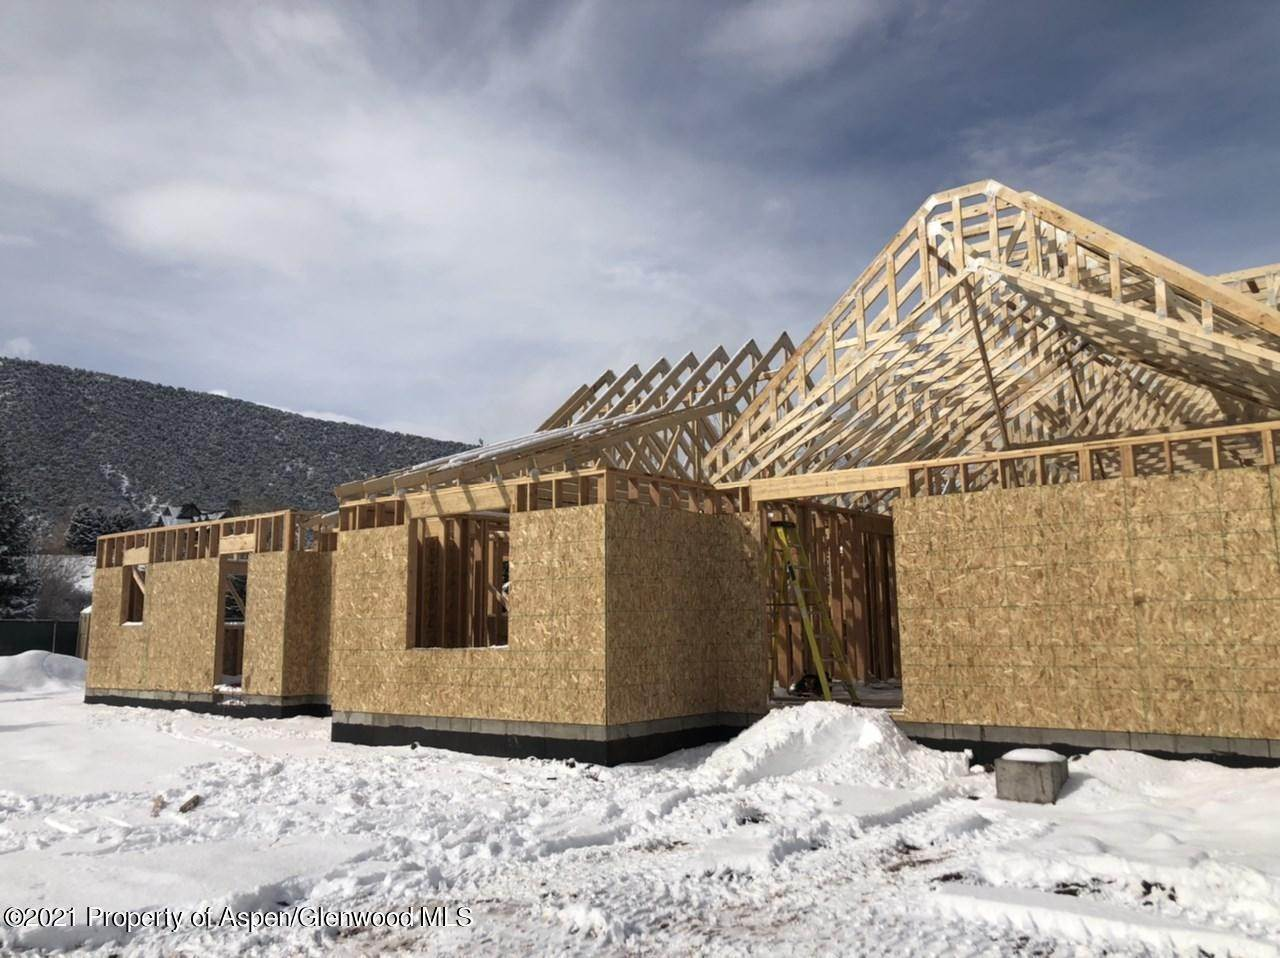 Single Family Home pour l à vendre à 12 Columbine Carbondale, Colorado,81623 États-Unis